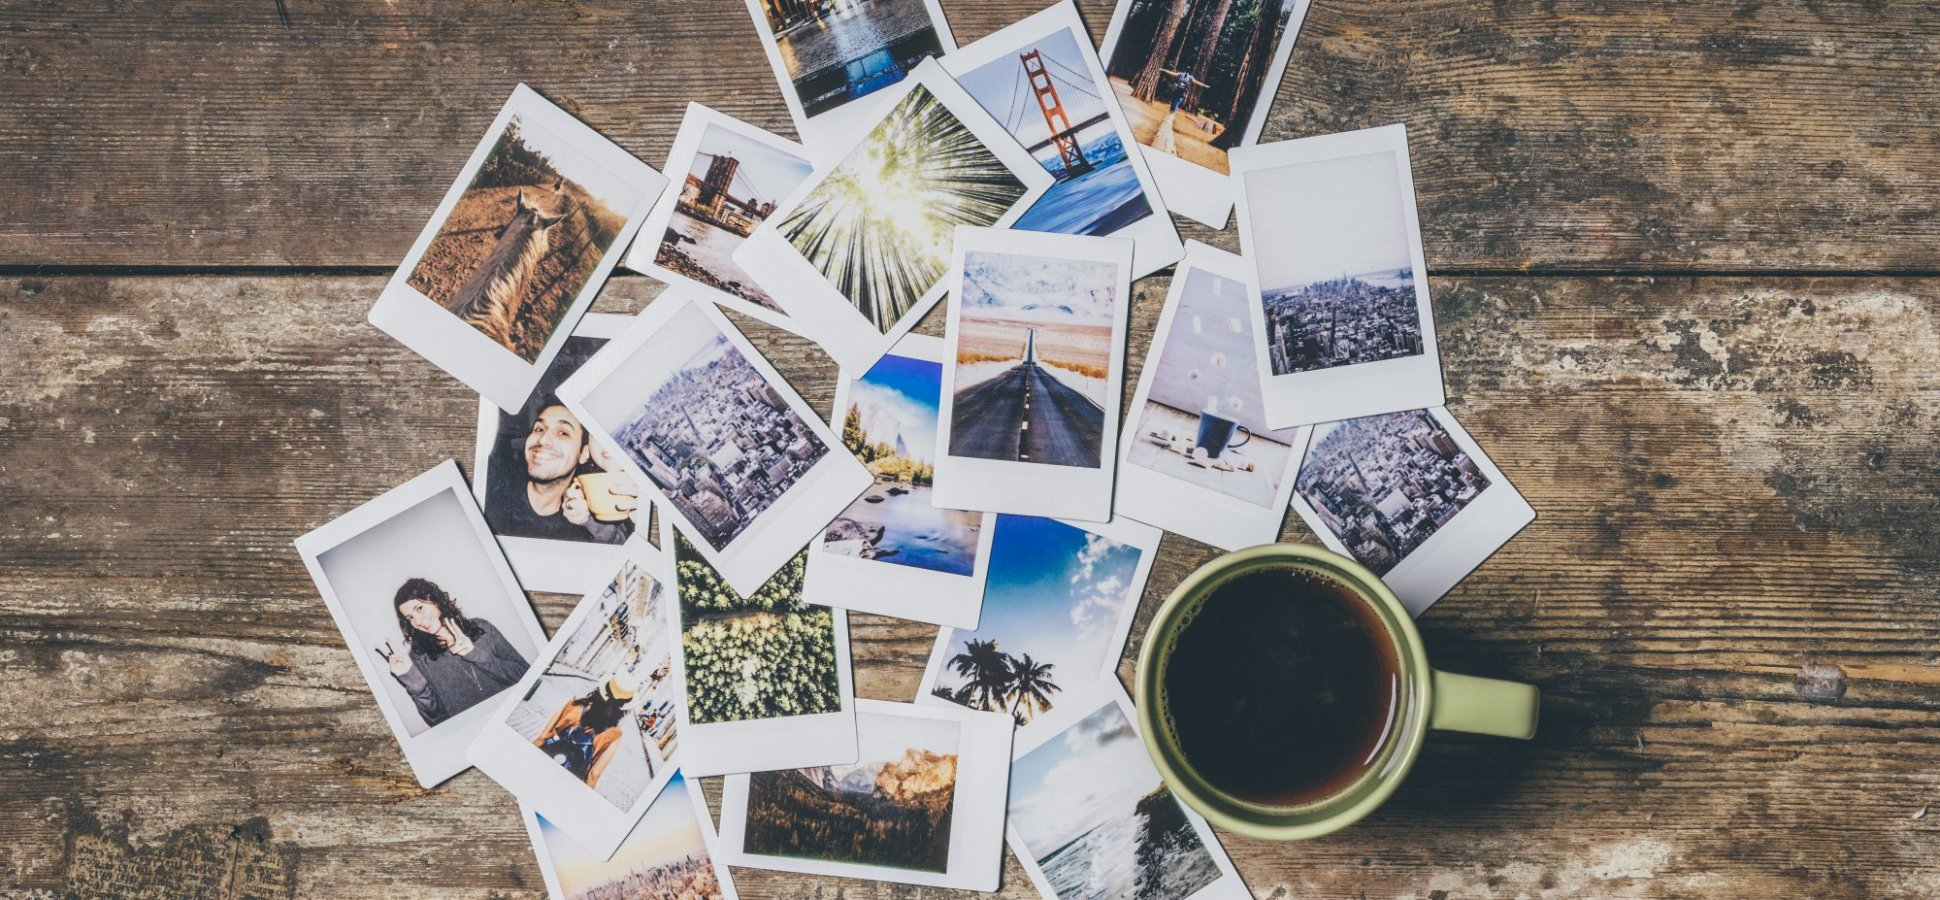 Study Shows 1 in 5 Successful Entrepreneurs Use Vision Boards--Backed by Neuroscience